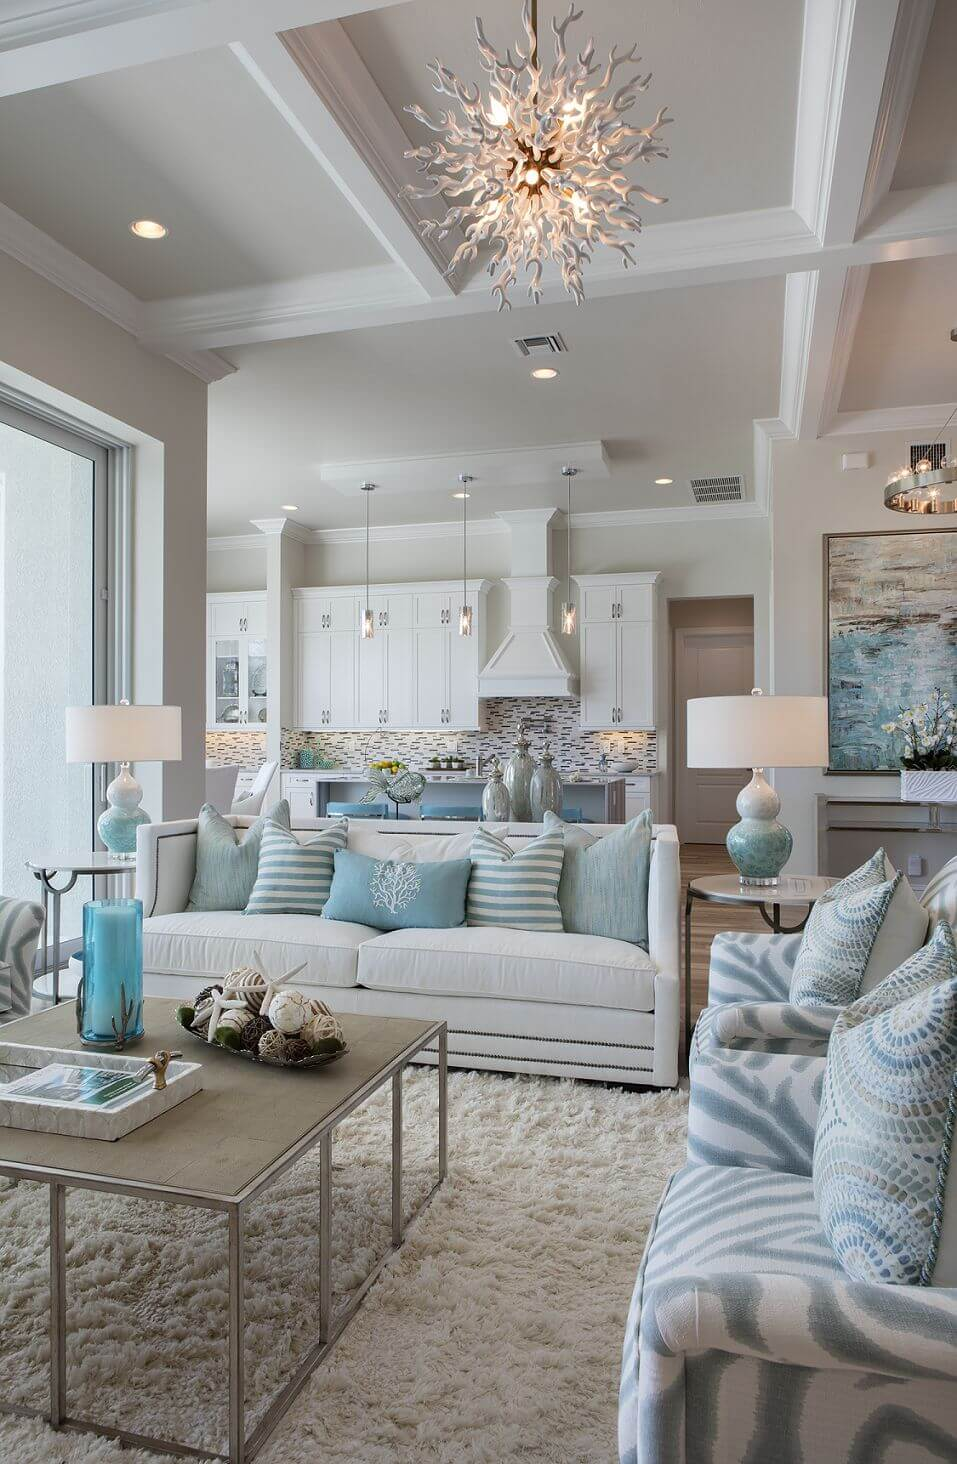 6. Beach Inspired Living Space With Coral Lighting